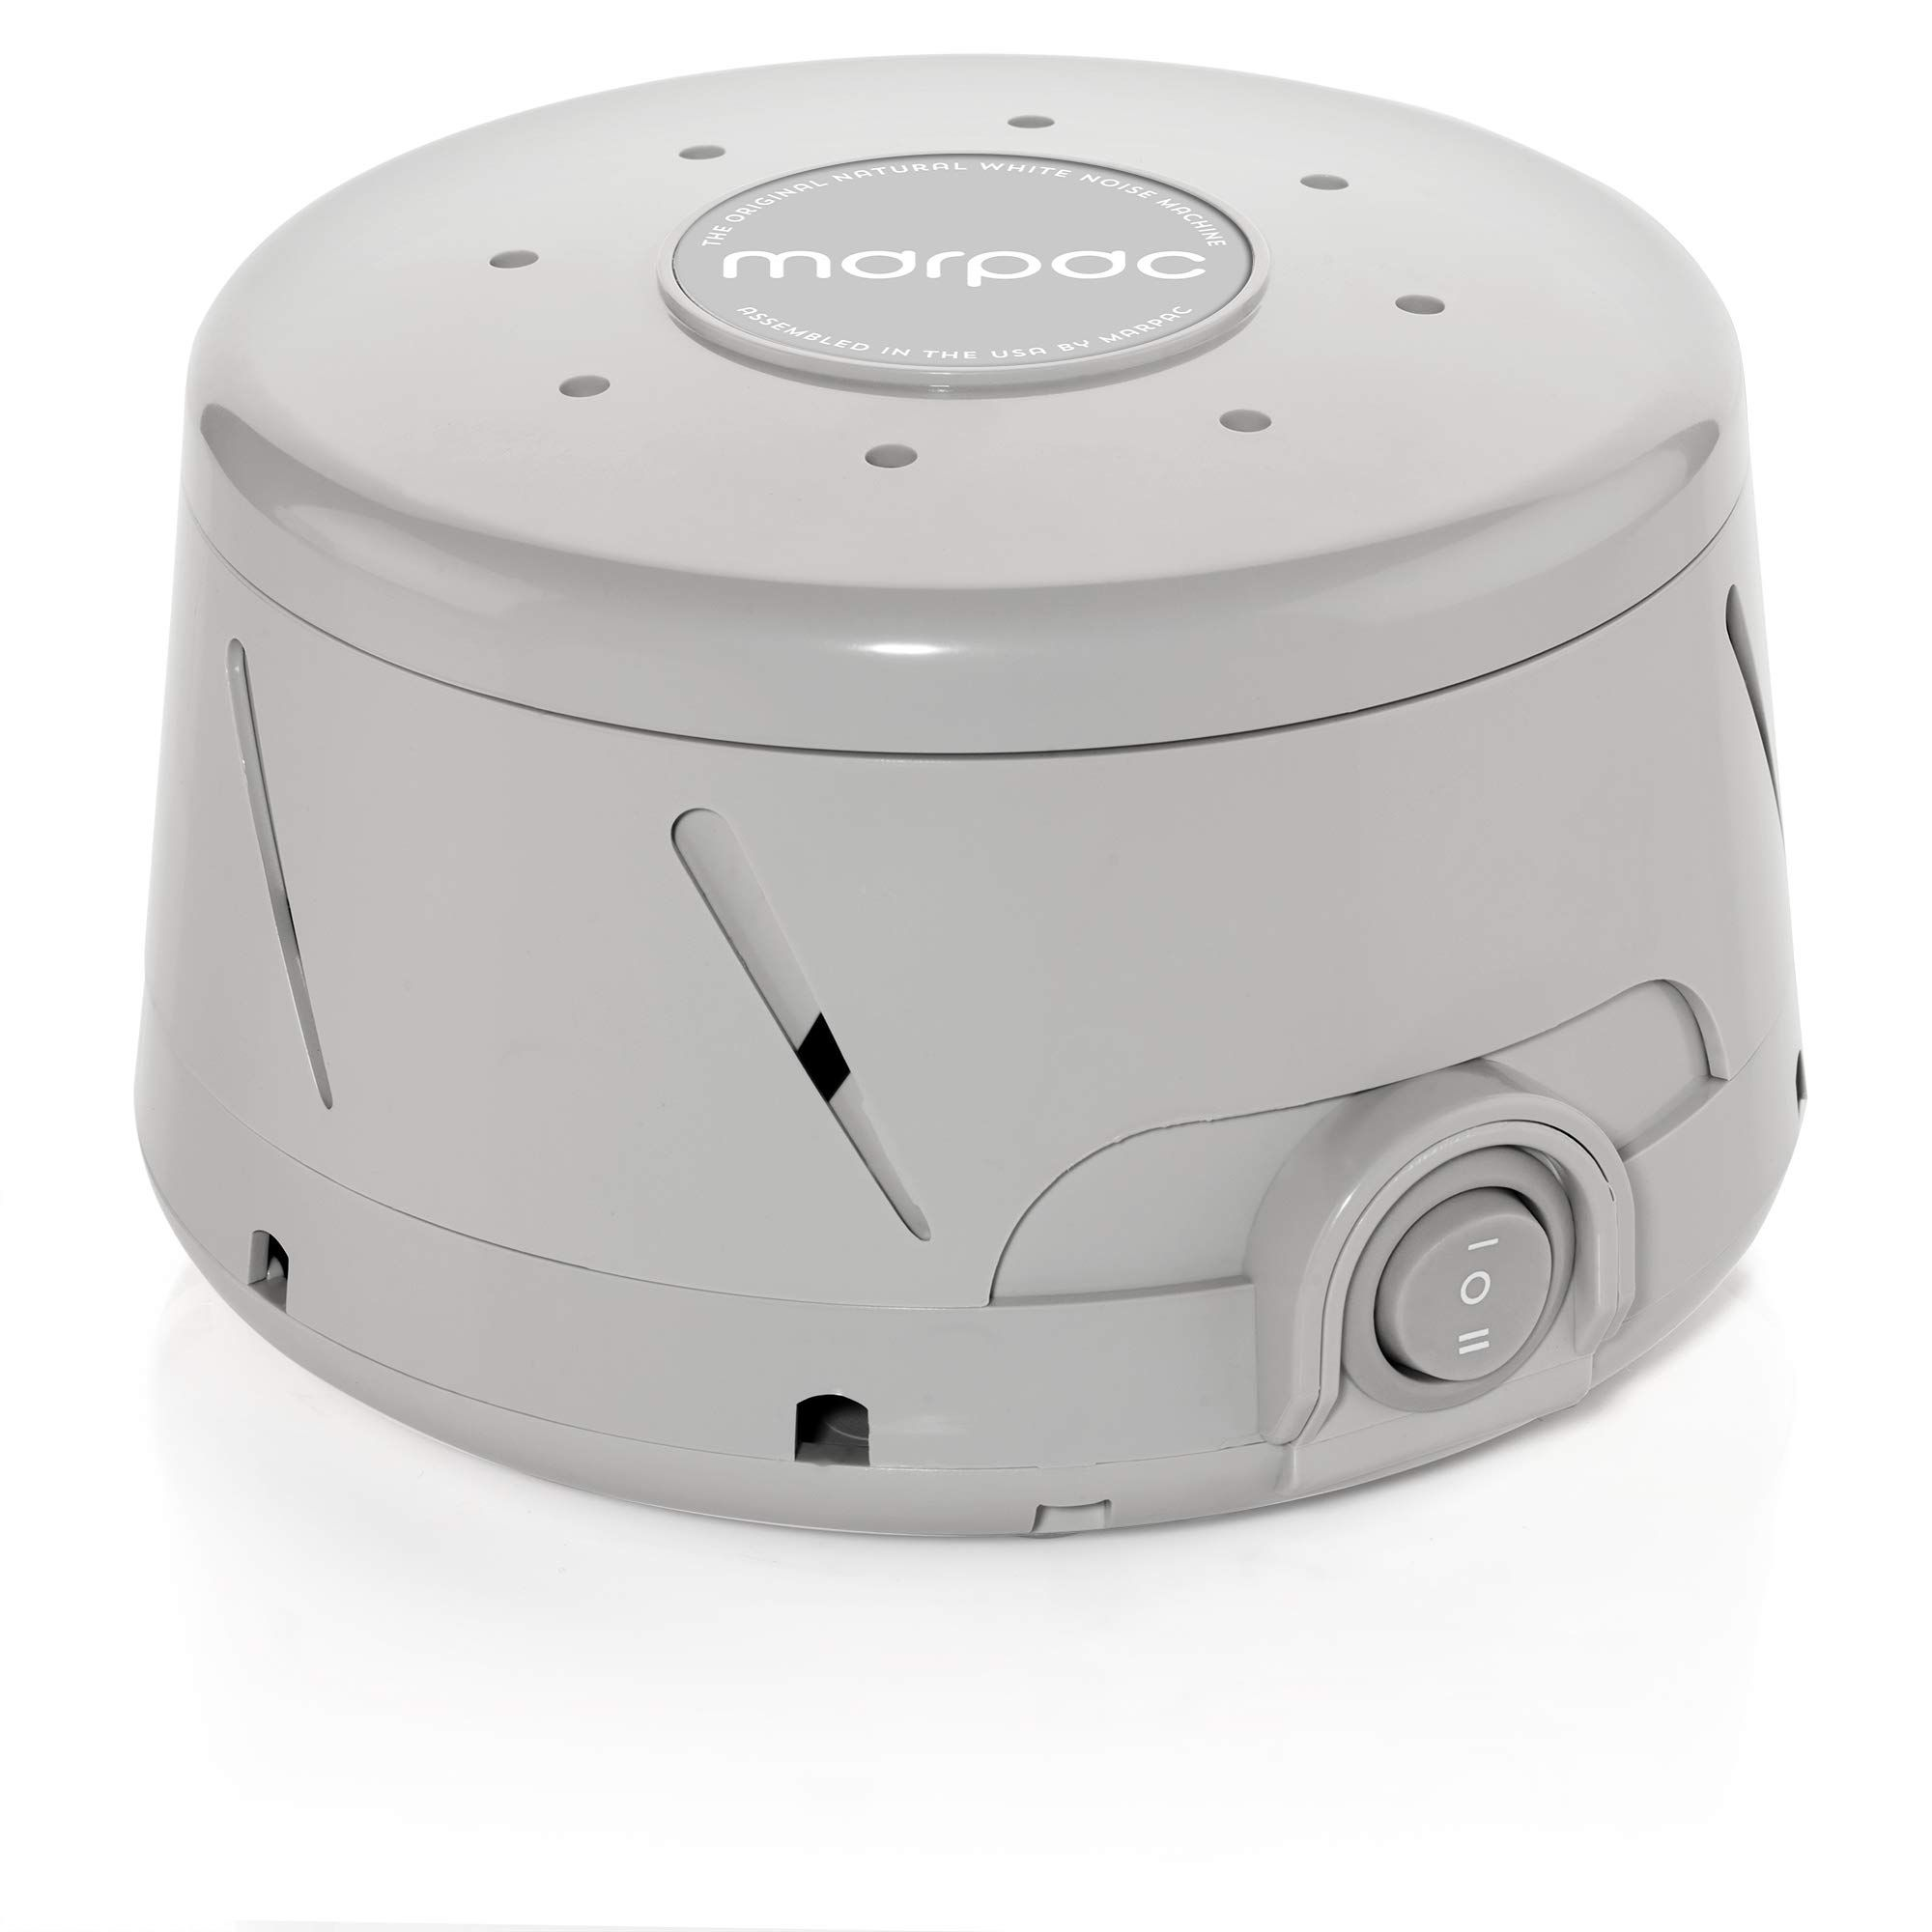 Marpac Dohm Classic Gray The Original White Noise Machine Soothing Natural Sound From A Real Fan Noise Cancelling Sleep Therapy Office Privacy Trave In 2020